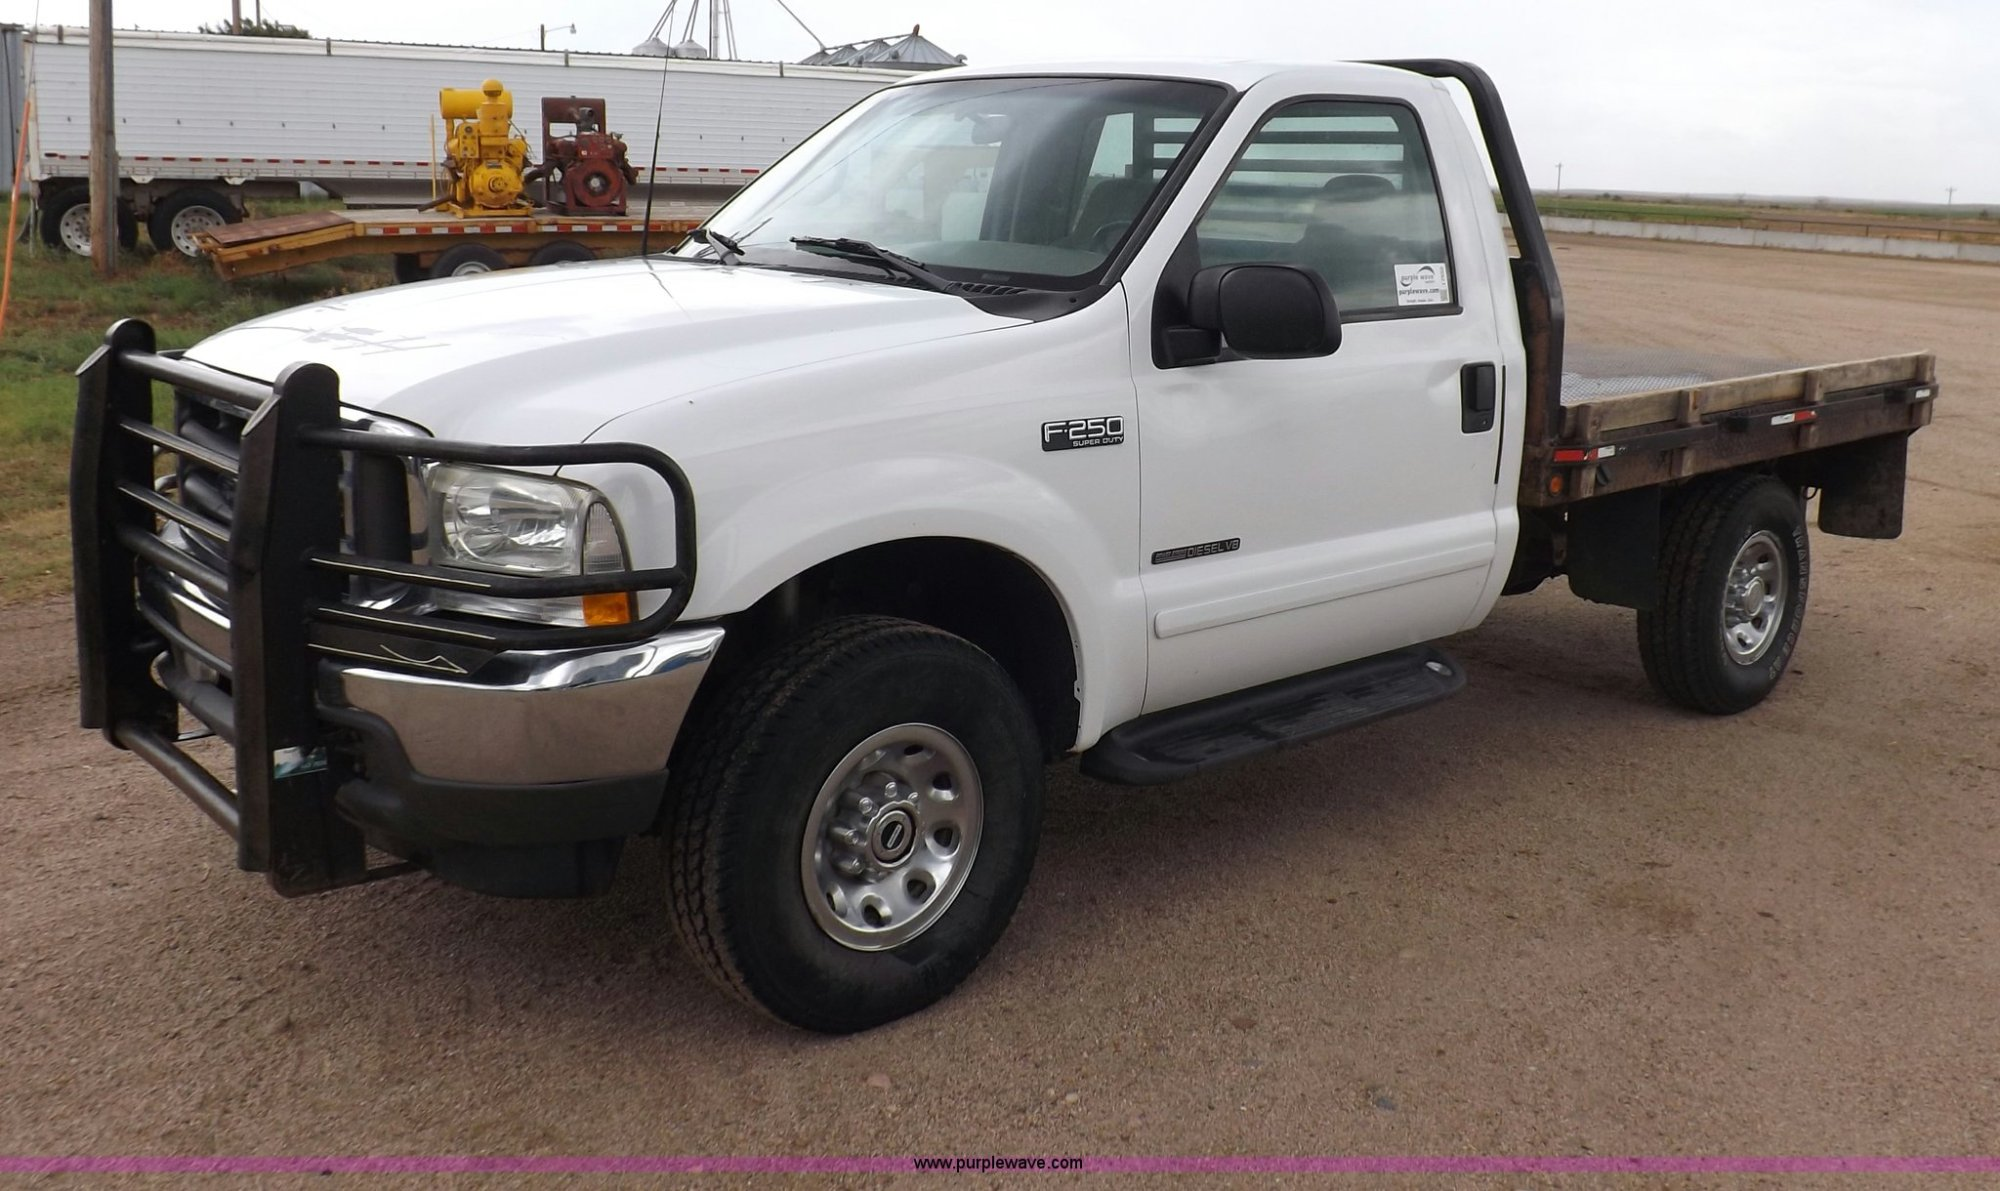 hight resolution of i7552 image for item i7552 2002 ford f250 super duty